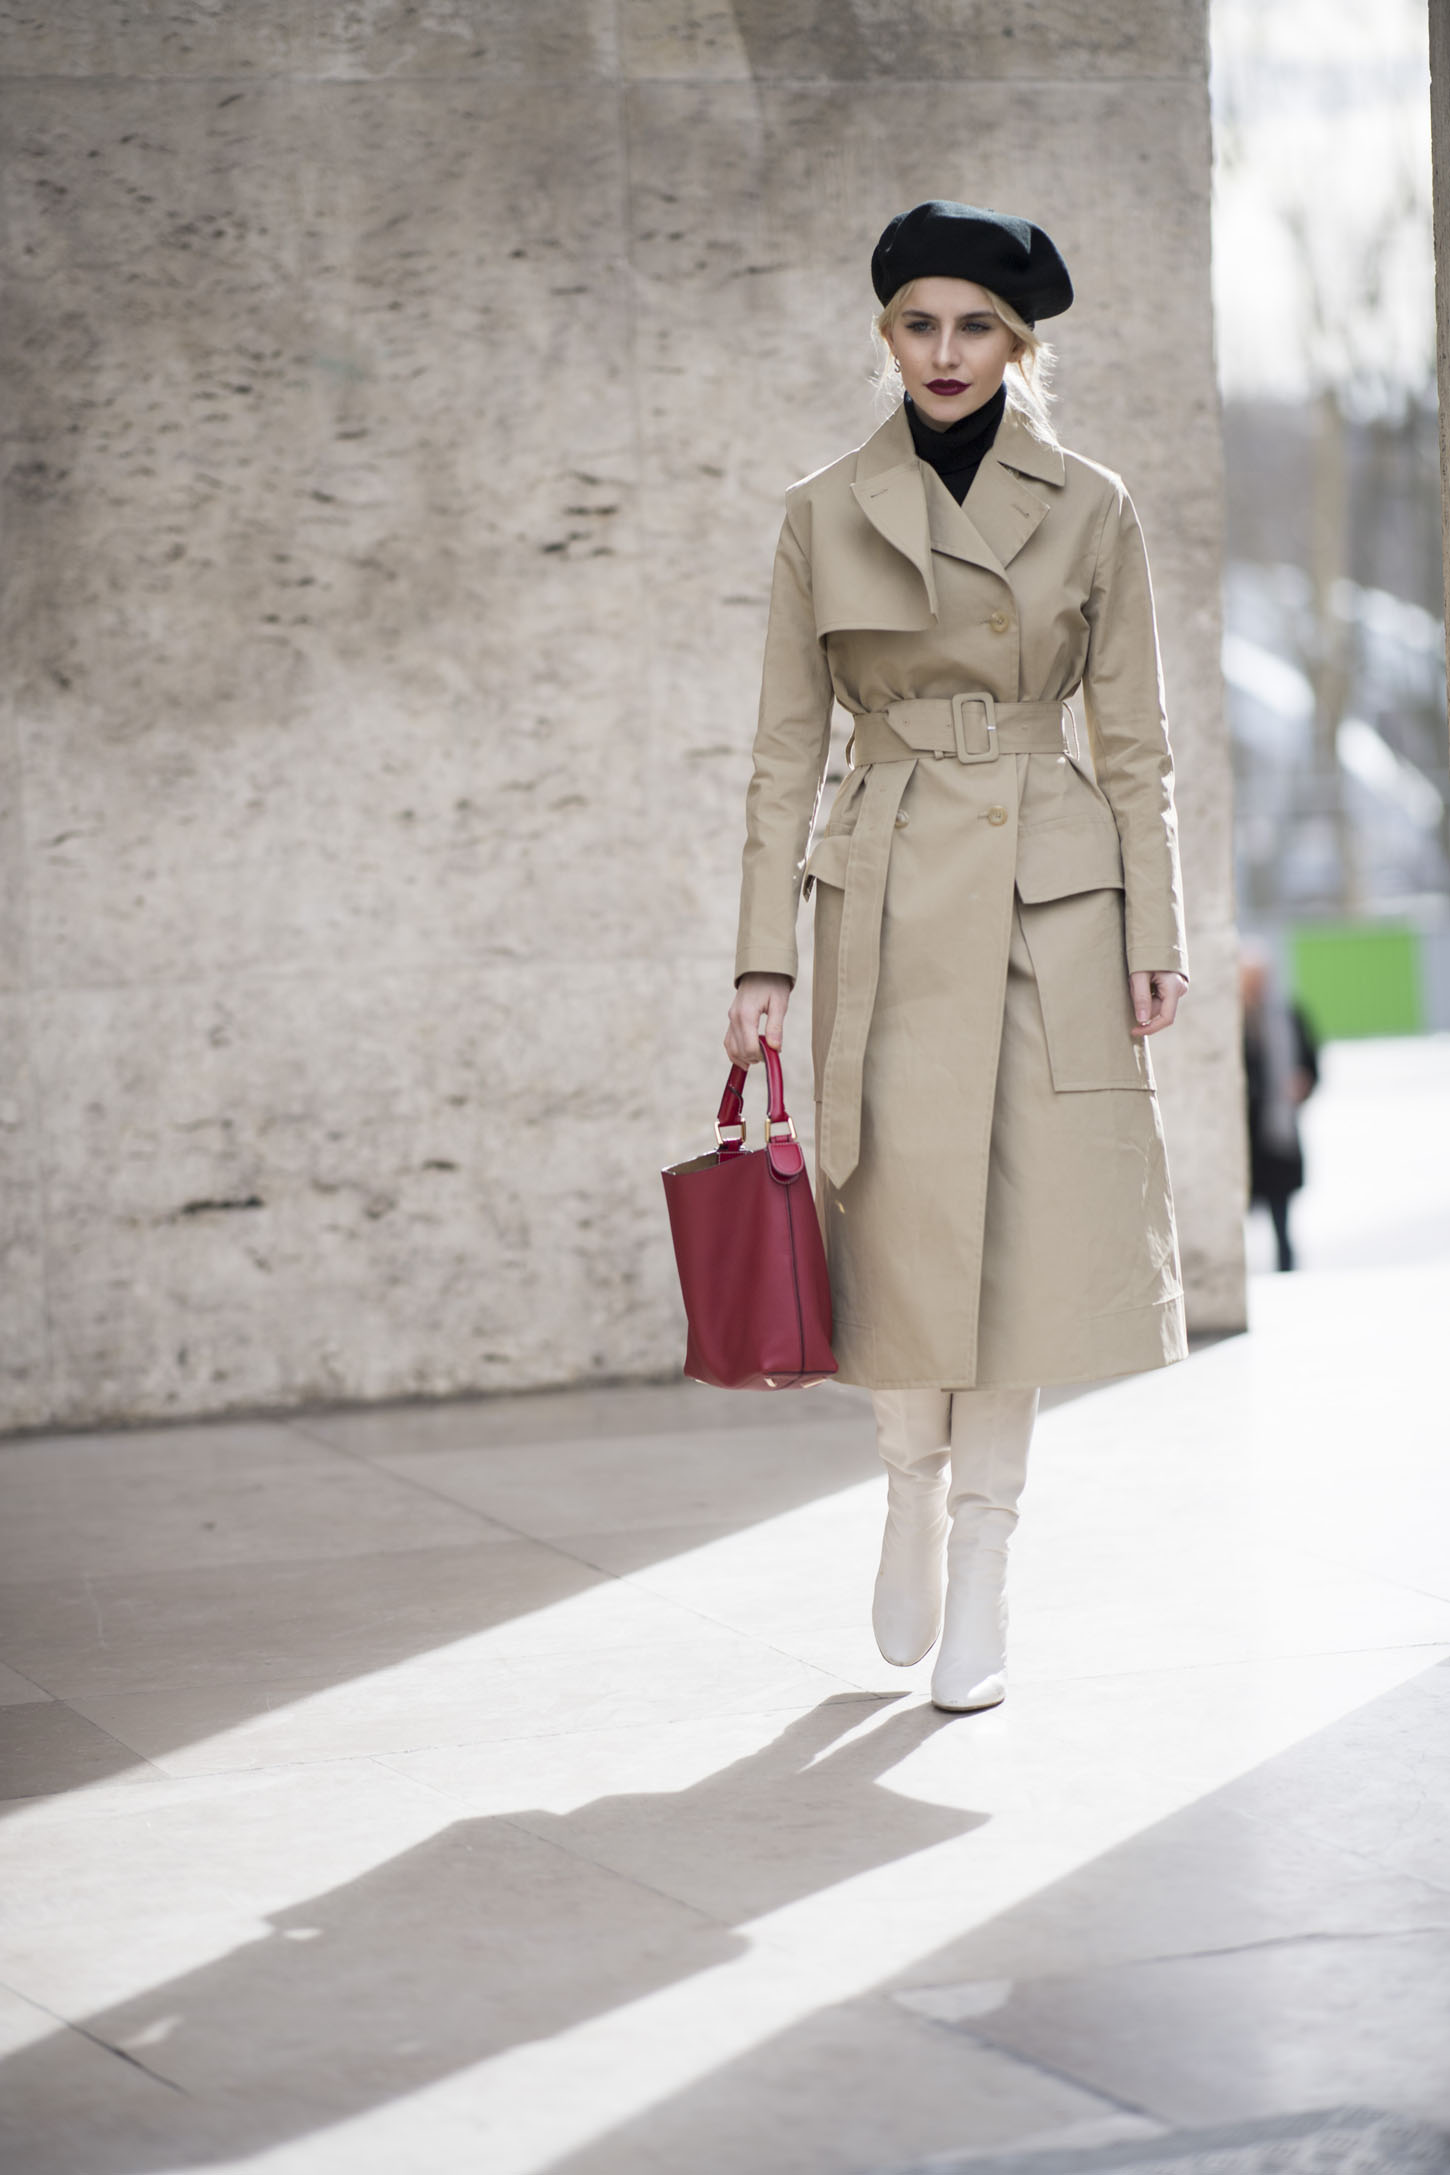 PARIS, FRANCE - MARCH 05: Caro Daur seen wearing a beige trenchcoat and a red bag from Loewe in the streets of Paris during the Paris Fashion Week Womenswear Fall/Winter 2018/2019 on March 5, 2018 in Paris, France.  (Photo by Timur Emek/Getty Images)